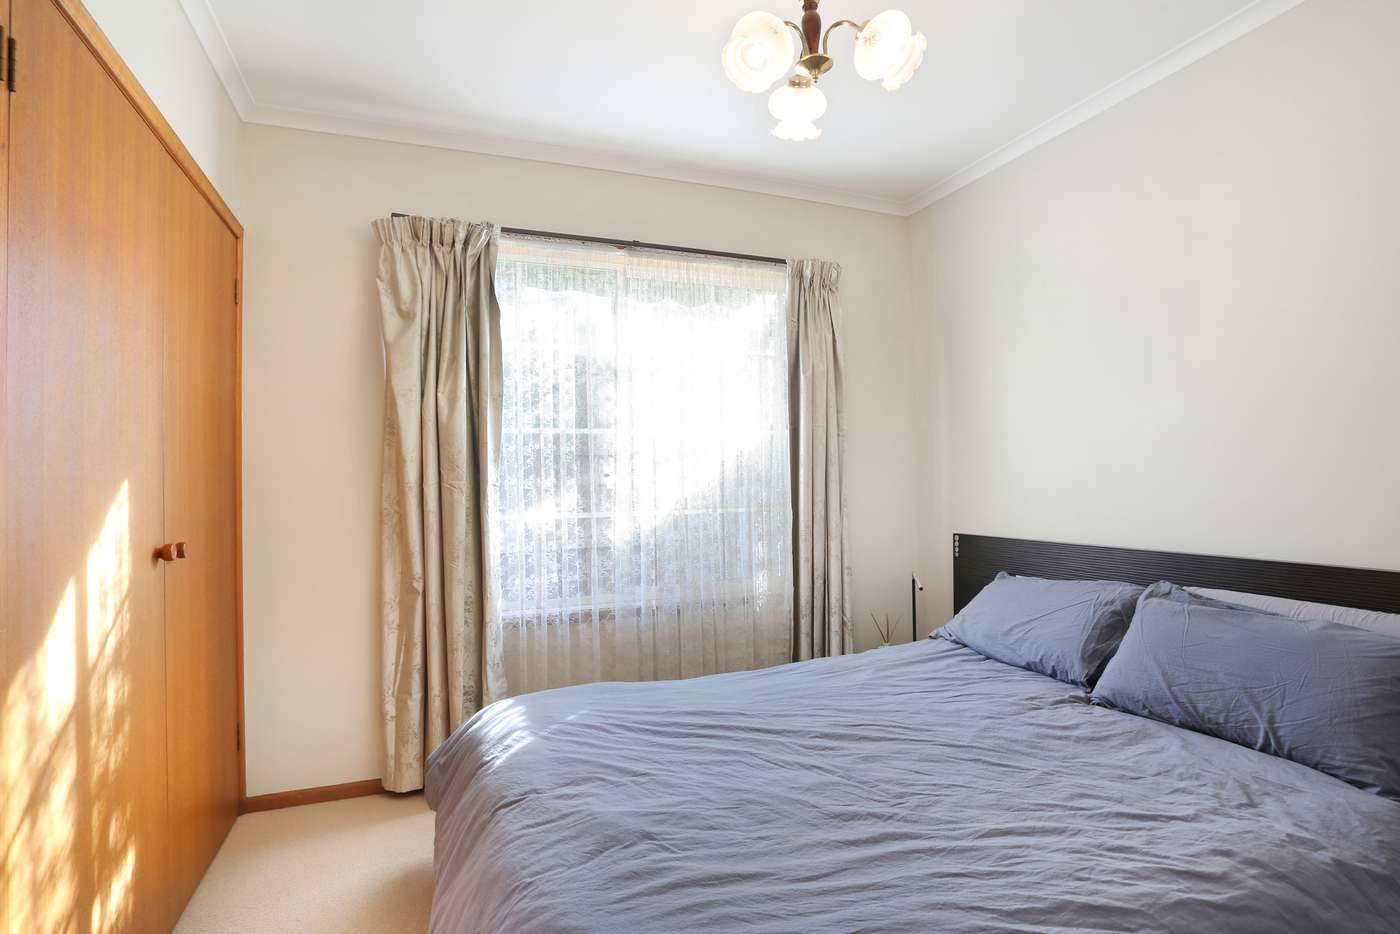 Sixth view of Homely unit listing, 2/250 Myers Street, Geelong VIC 3220